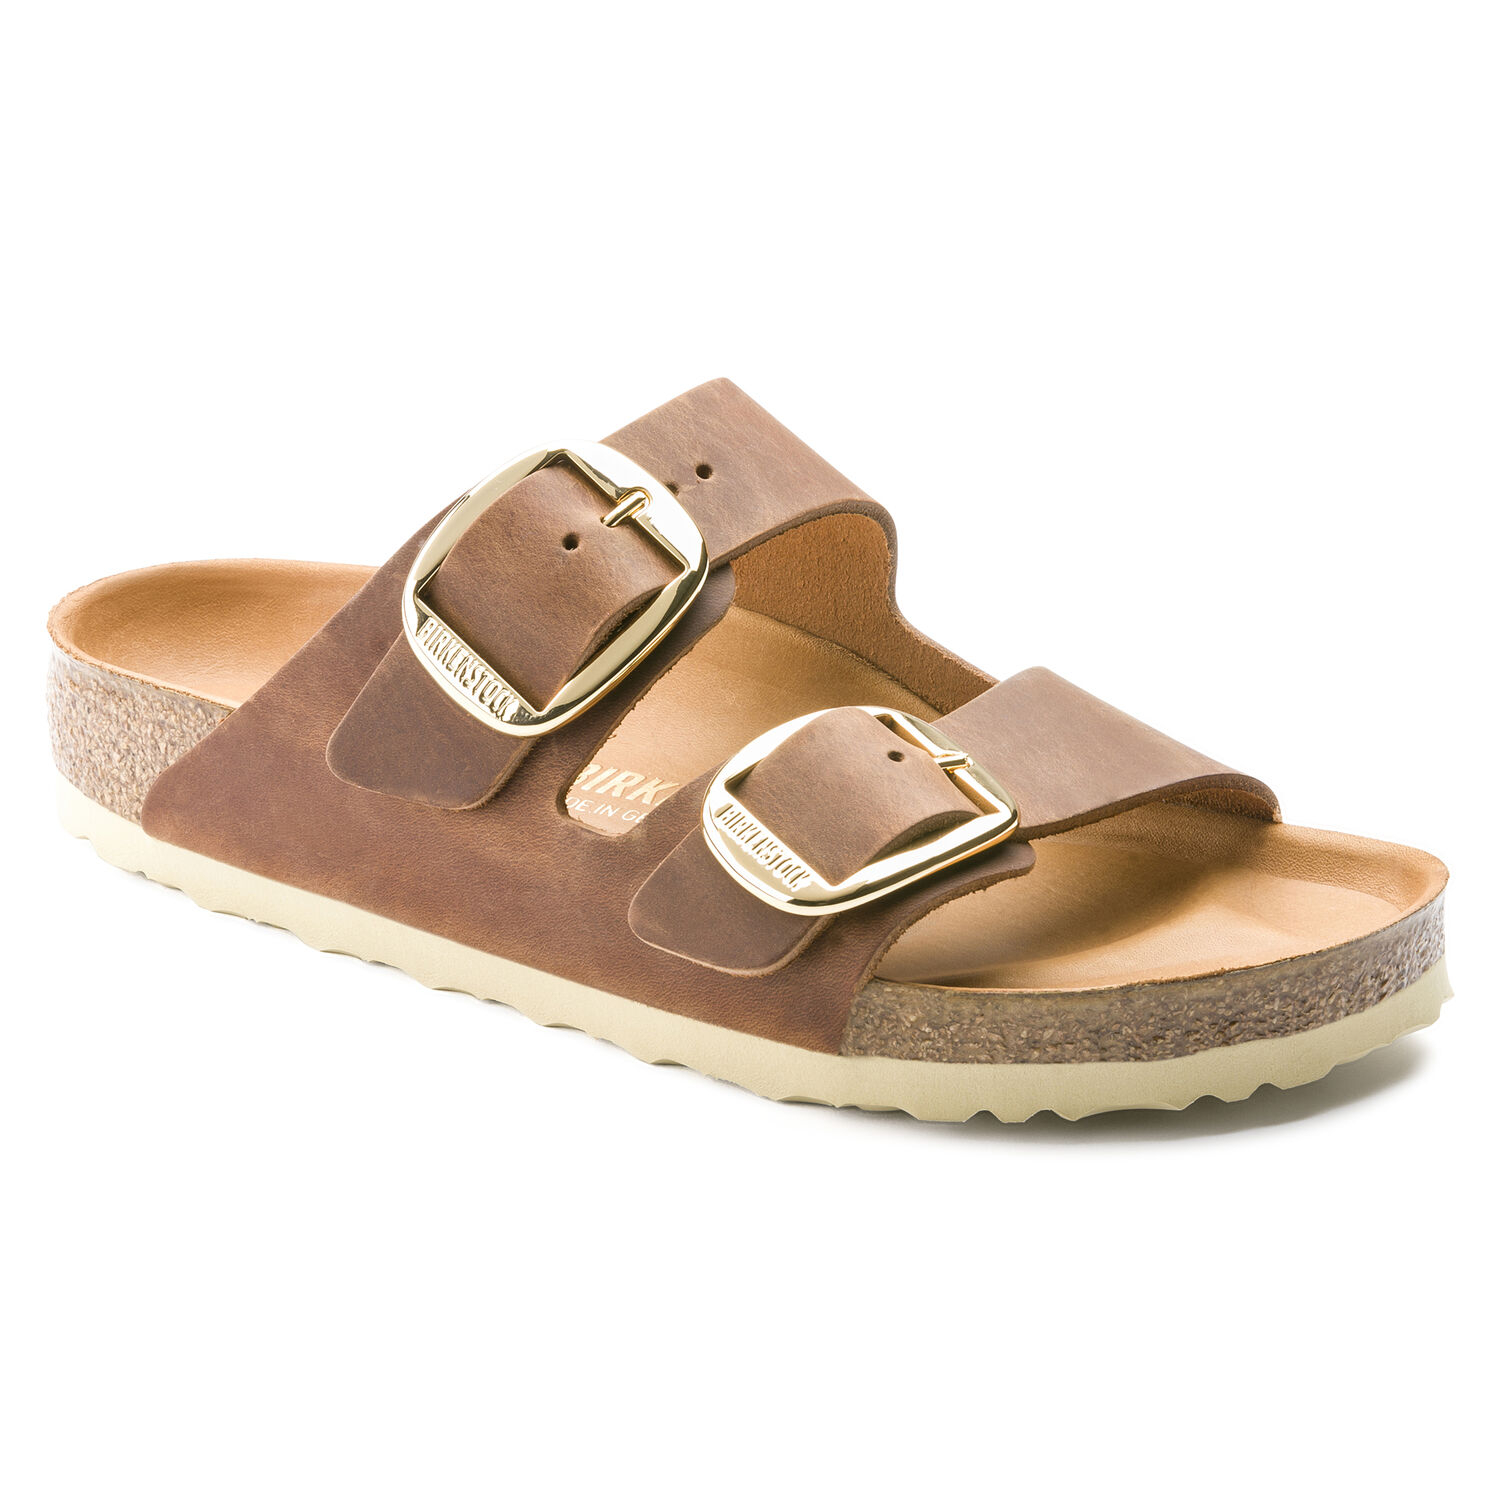 Ciabatte donna BIRKENSTOCK ARIZONA COGNAC BIG BUCKLE